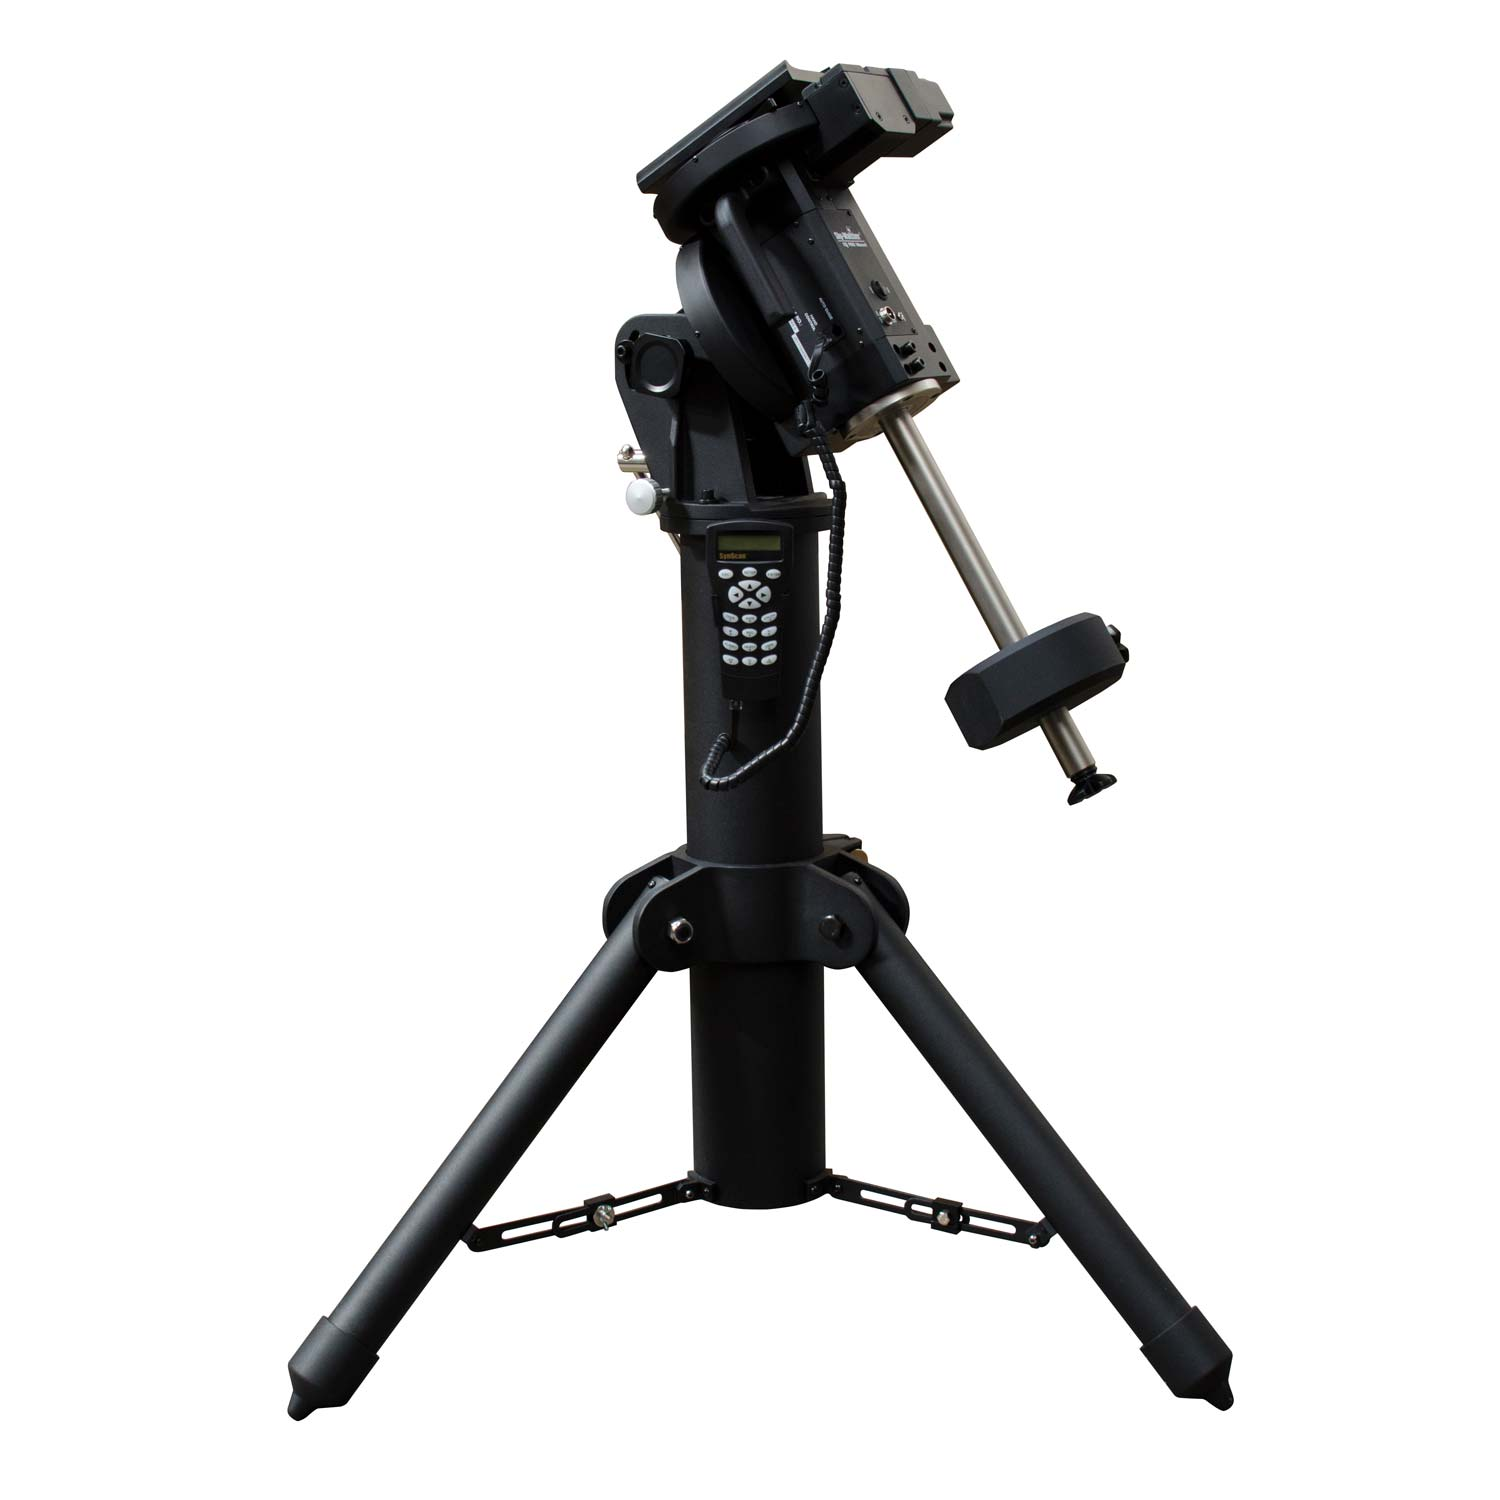 EQ8 GOTO Mount with Pier Tripod